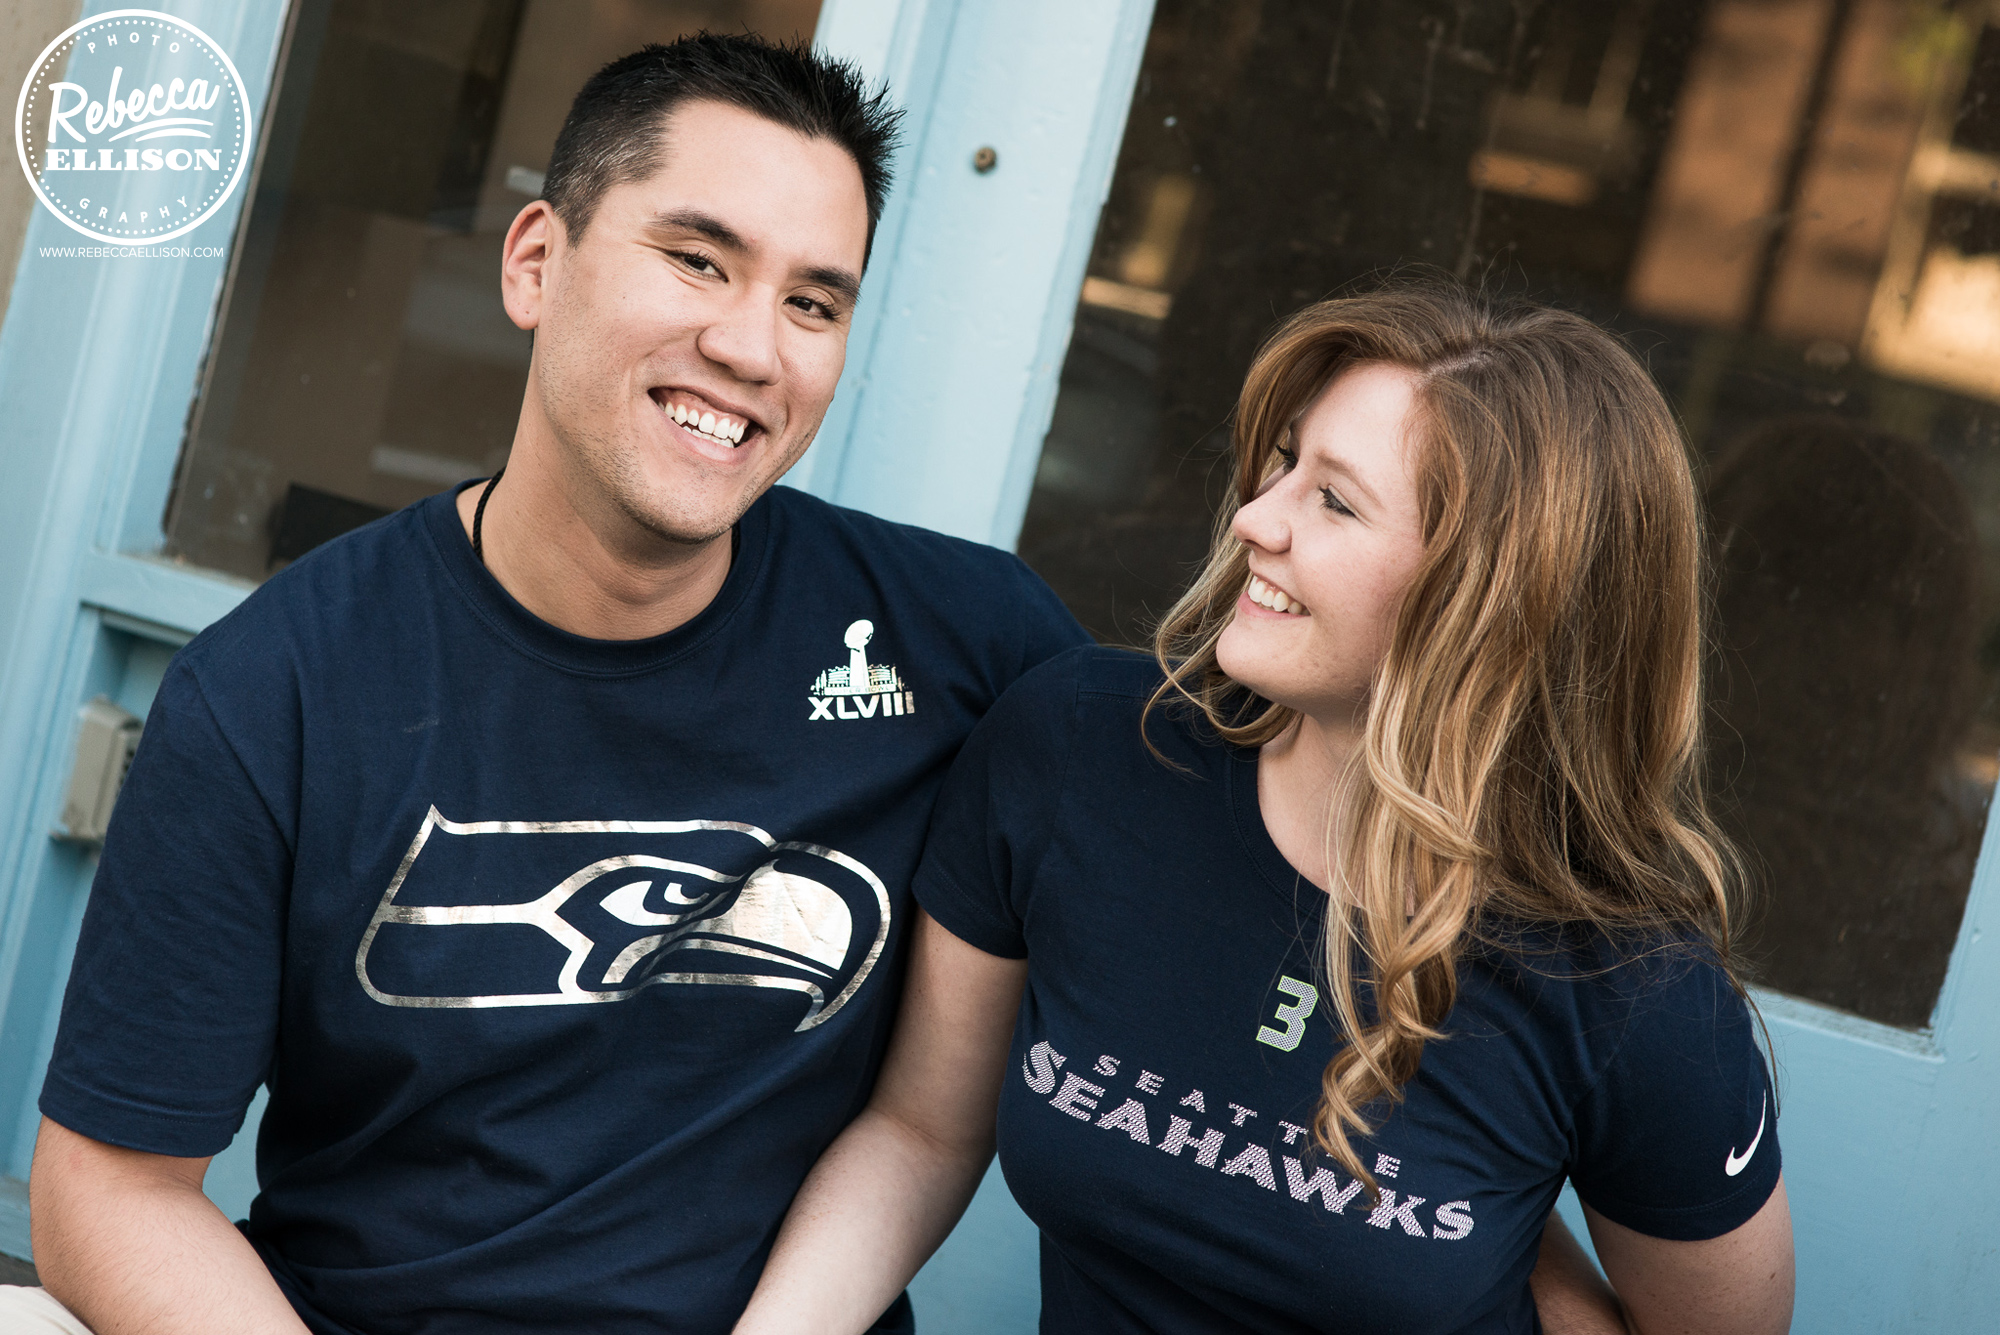 A couple wearing Seahawks t-shirts celebrates their engagement during outdoor engagement photos by Ballard engagement photographer Rebecca Ellison